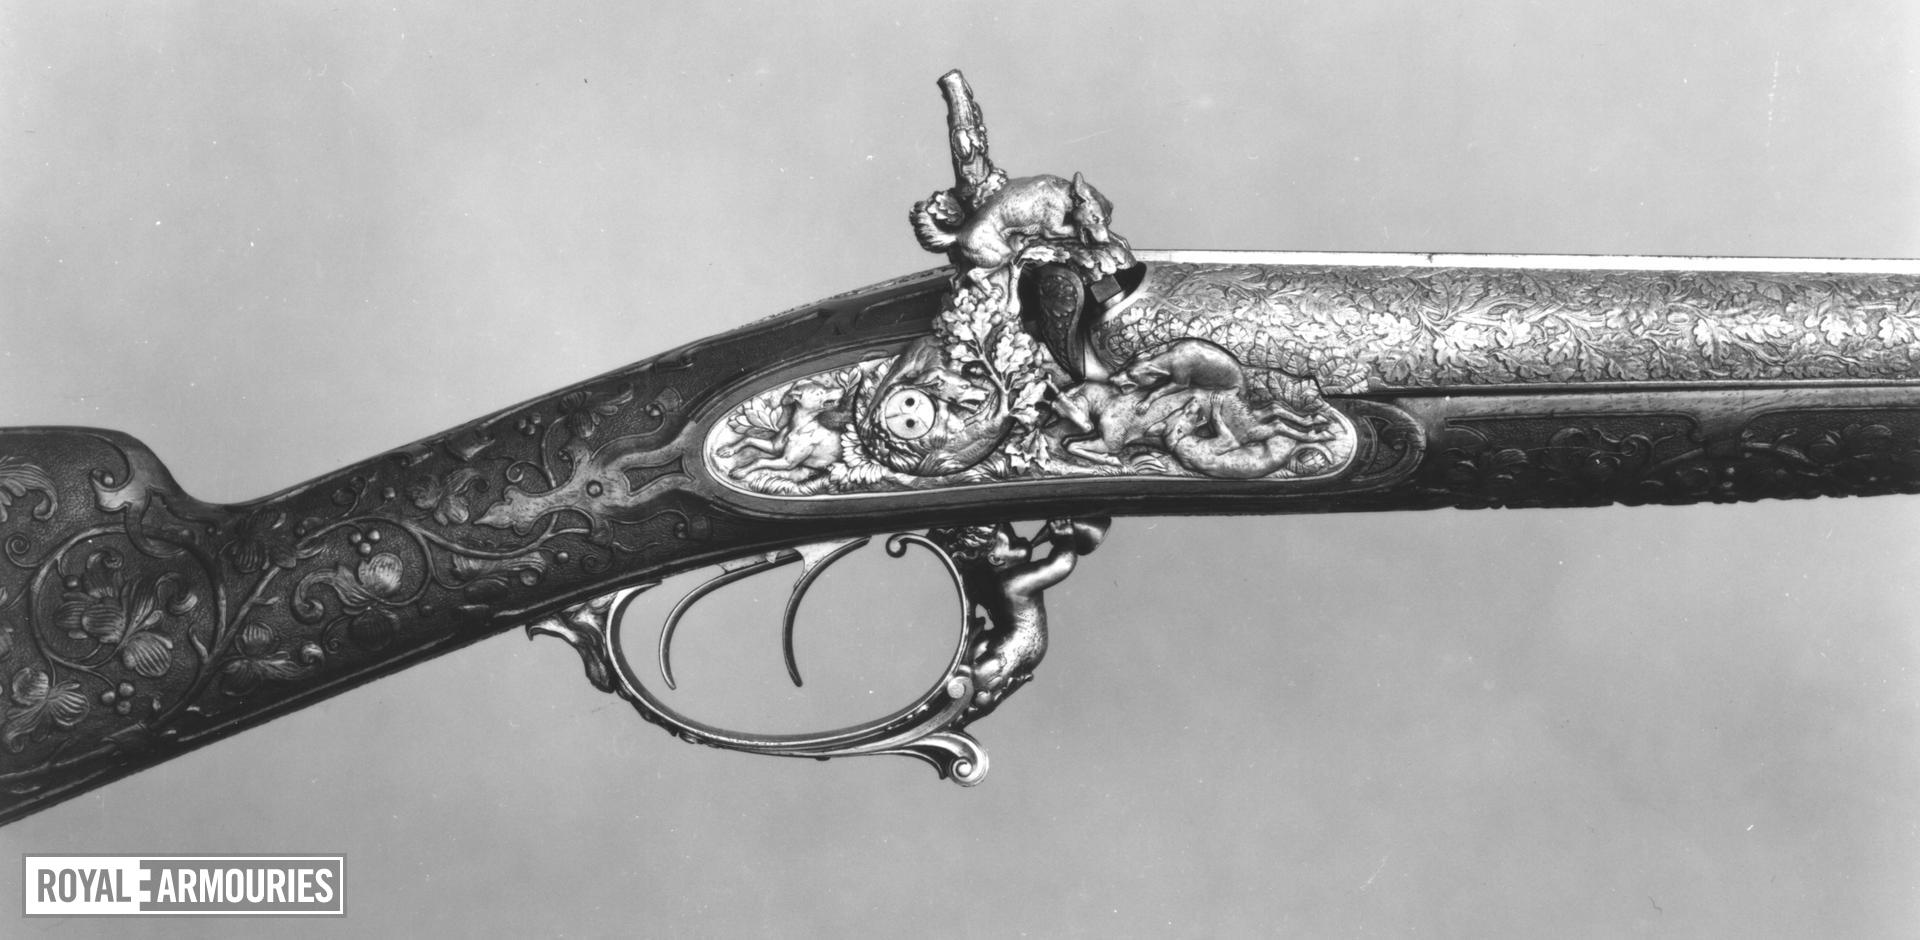 Percussion double-barrelled shotgun - LePage-Moutier exhibition gun heavily decorated